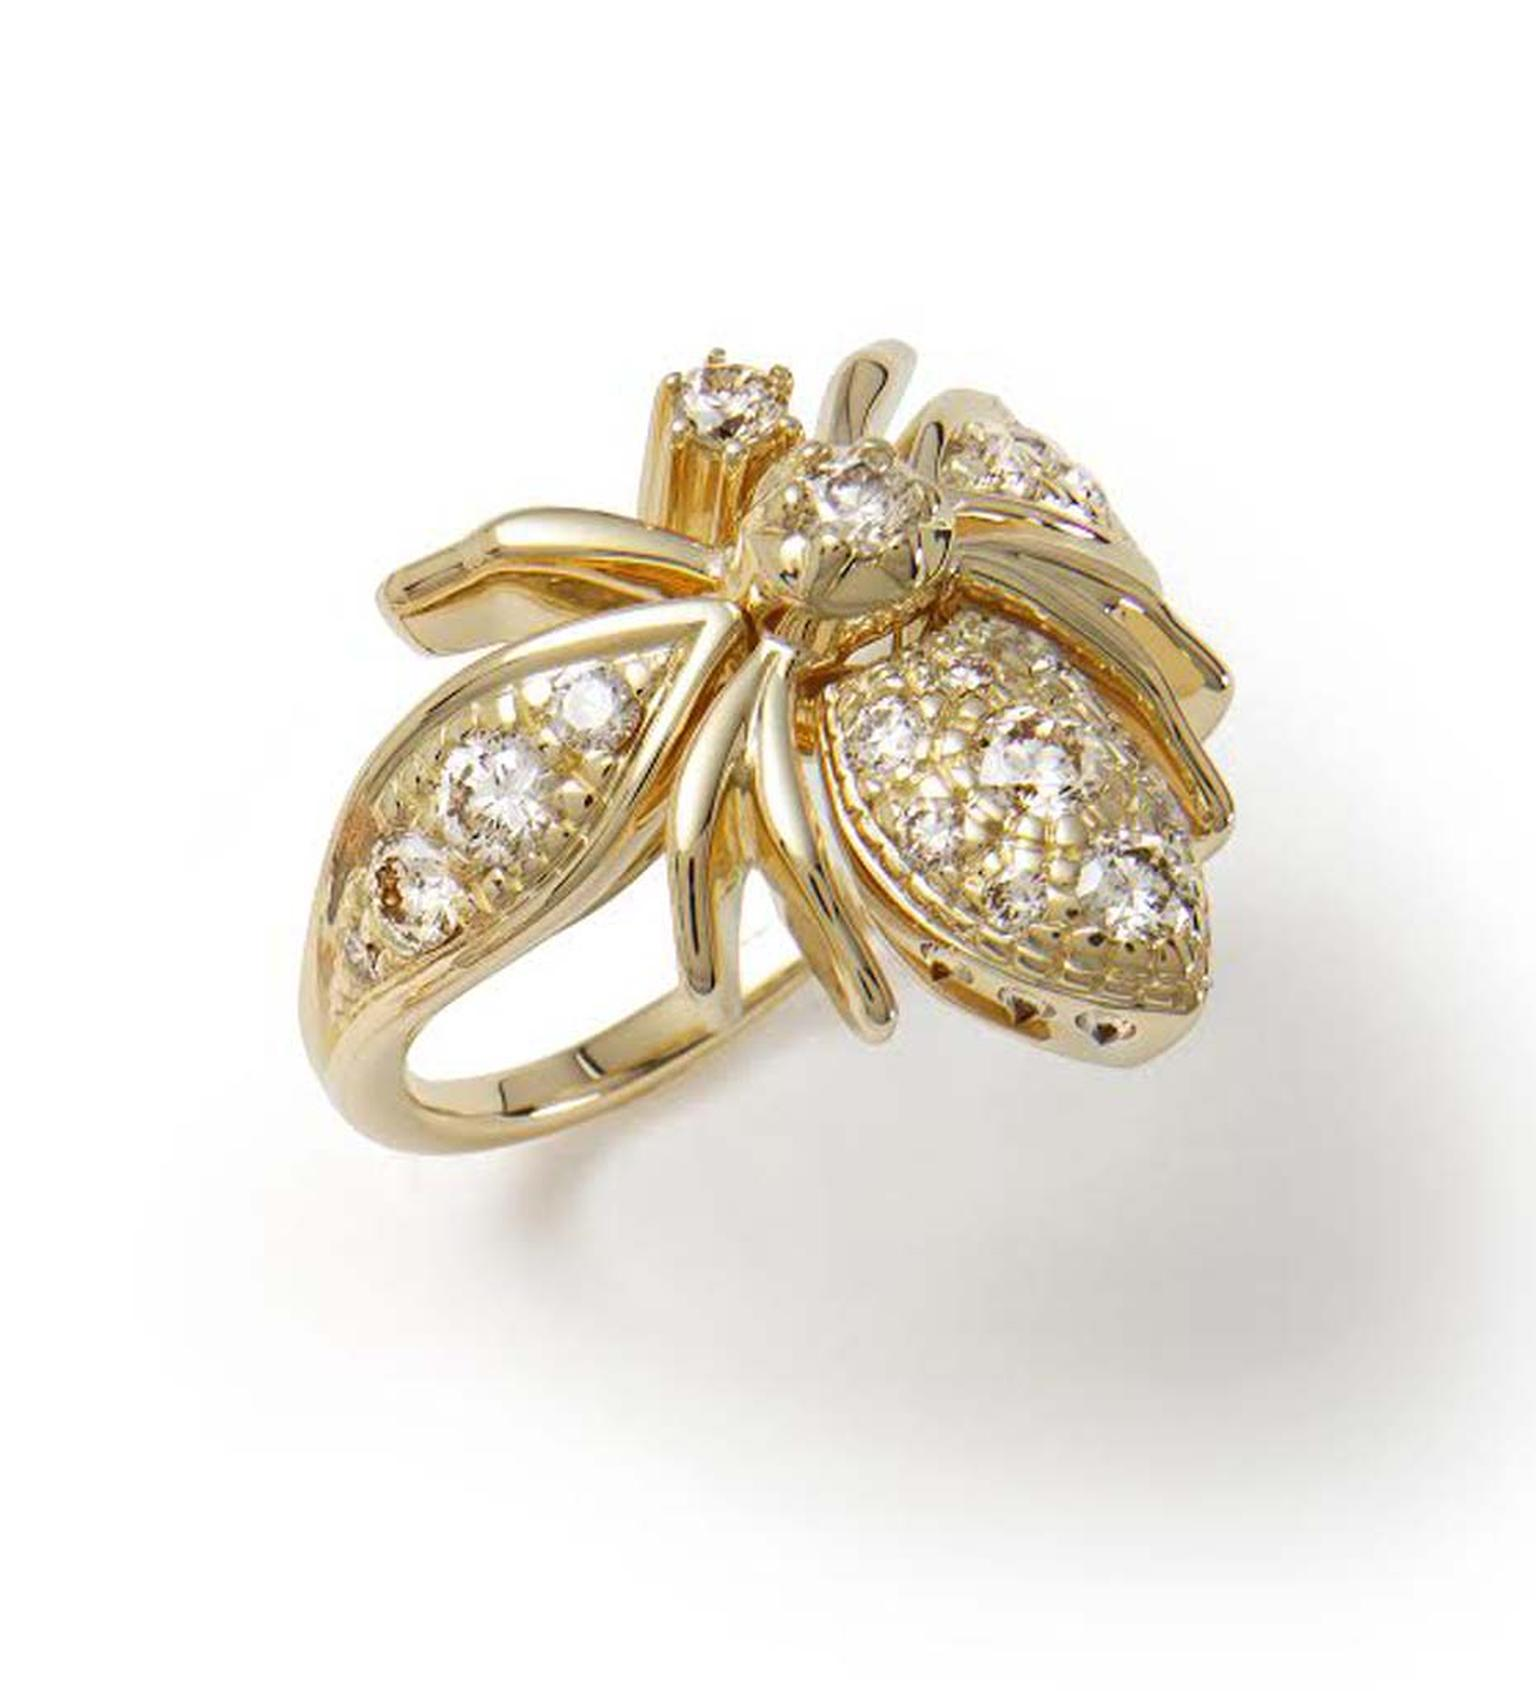 Bee-inspired ring from the Rock Season collection by H.Stern in yellow gold set with cognac diamonds.